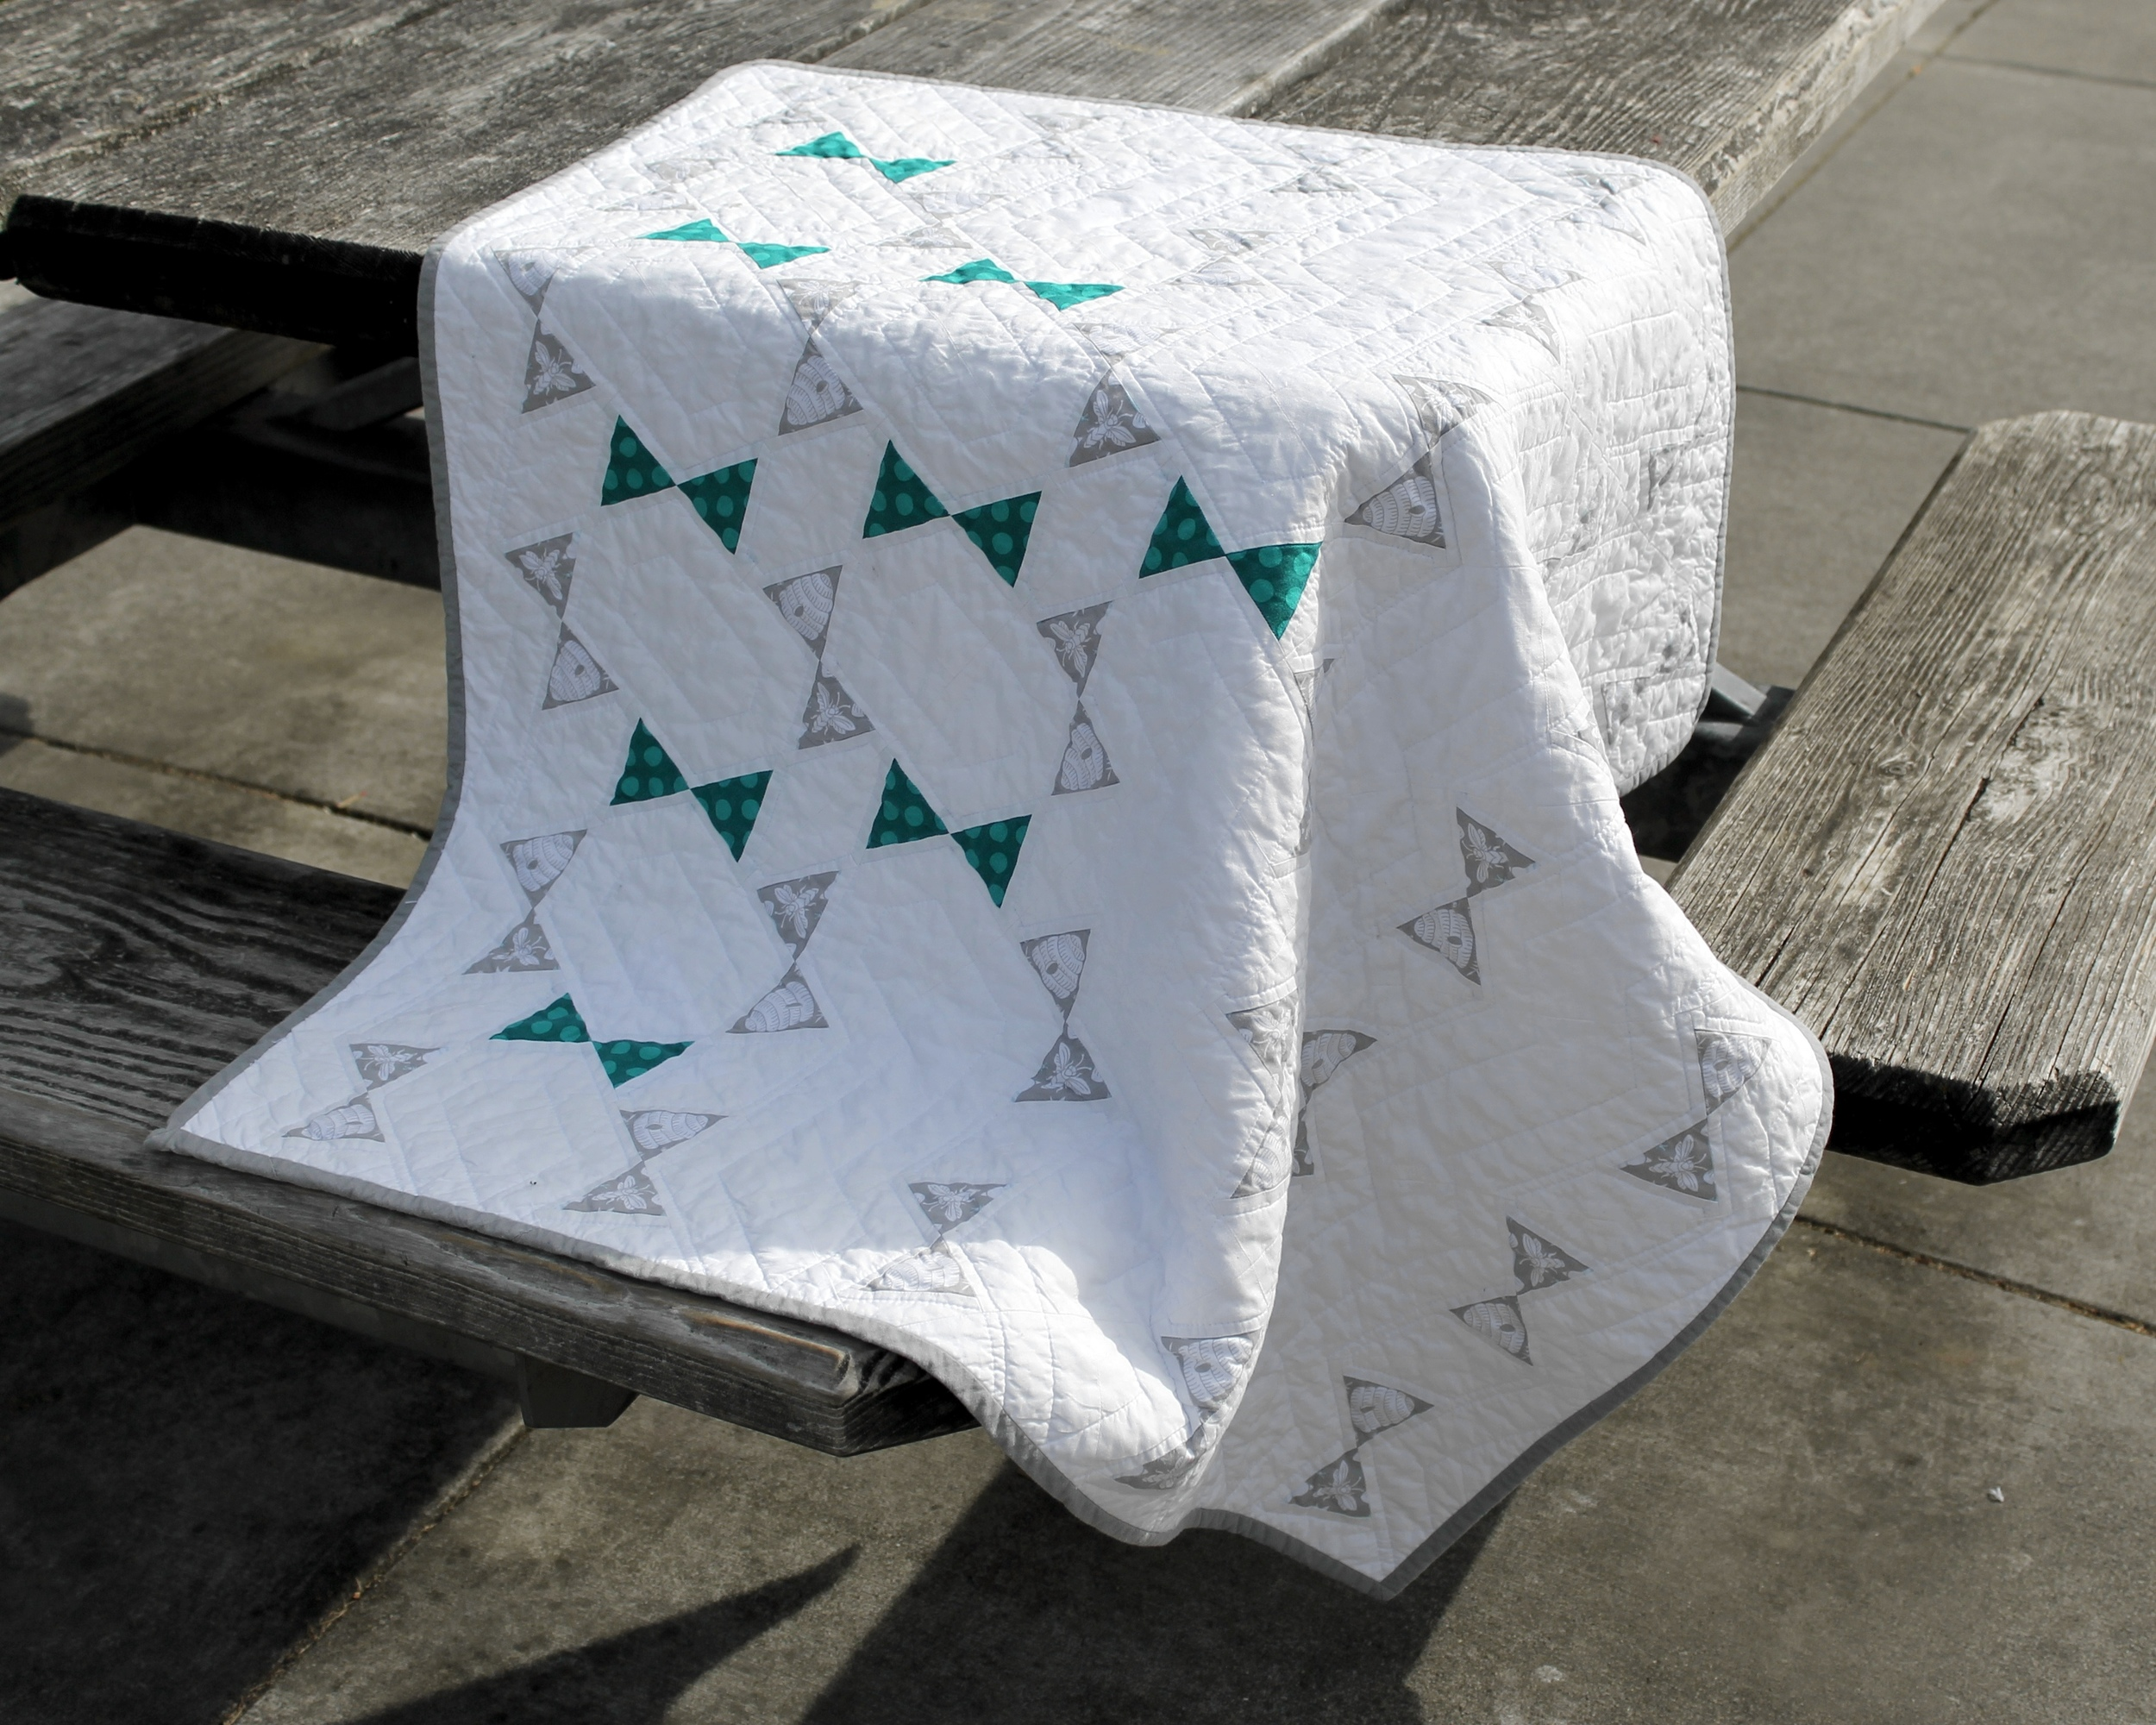 Gray and teal modern quilt draped on a table